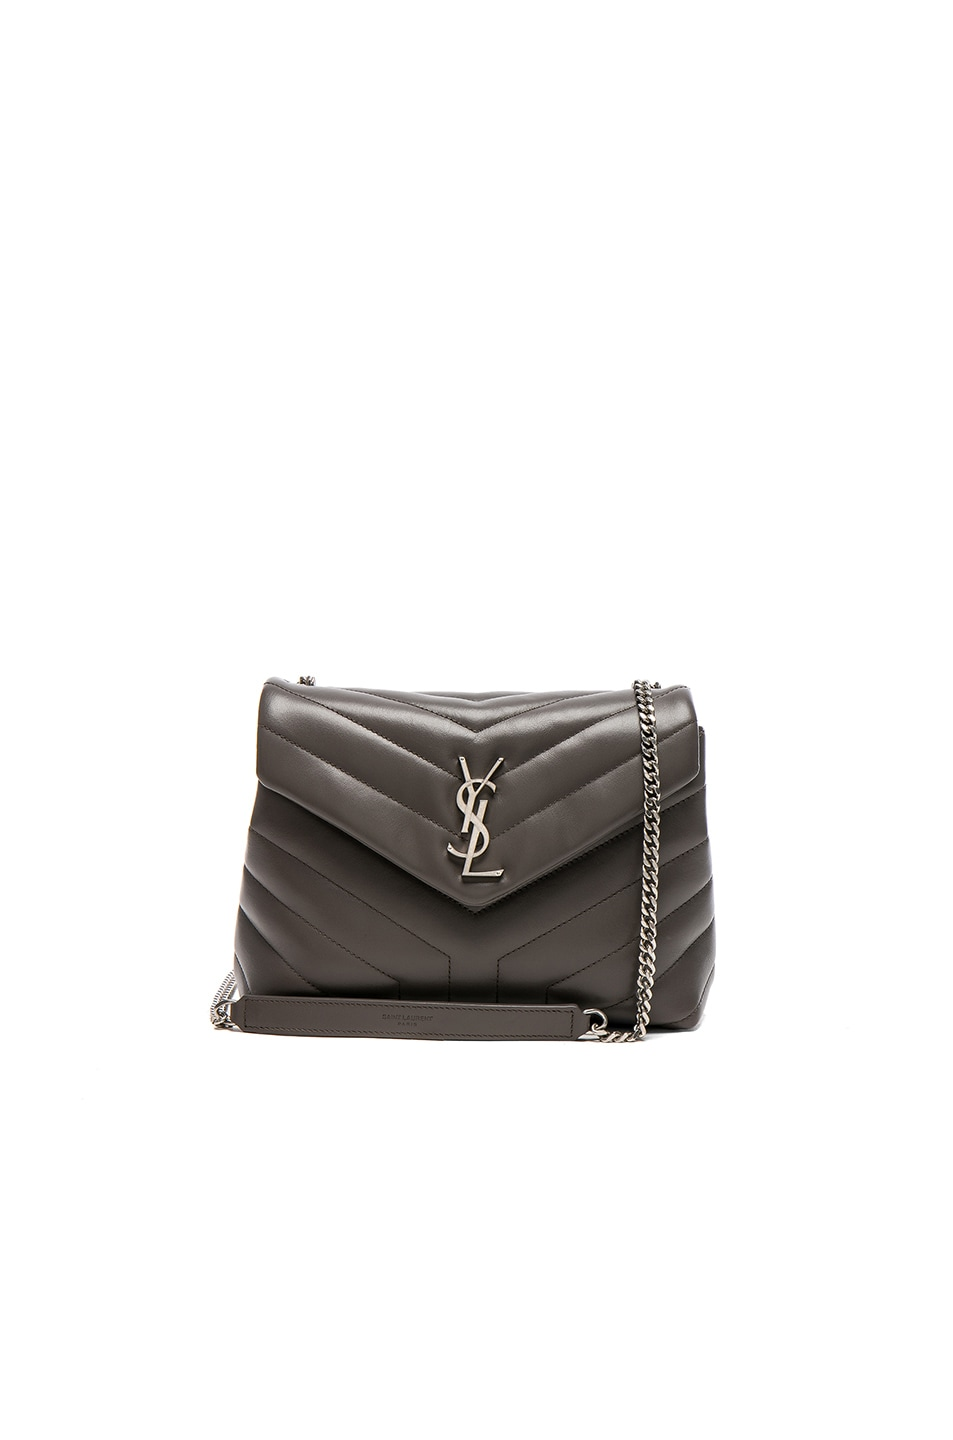 Image 1 of Saint Laurent Small Supple Monogramme Loulou Chain Bag in Earth